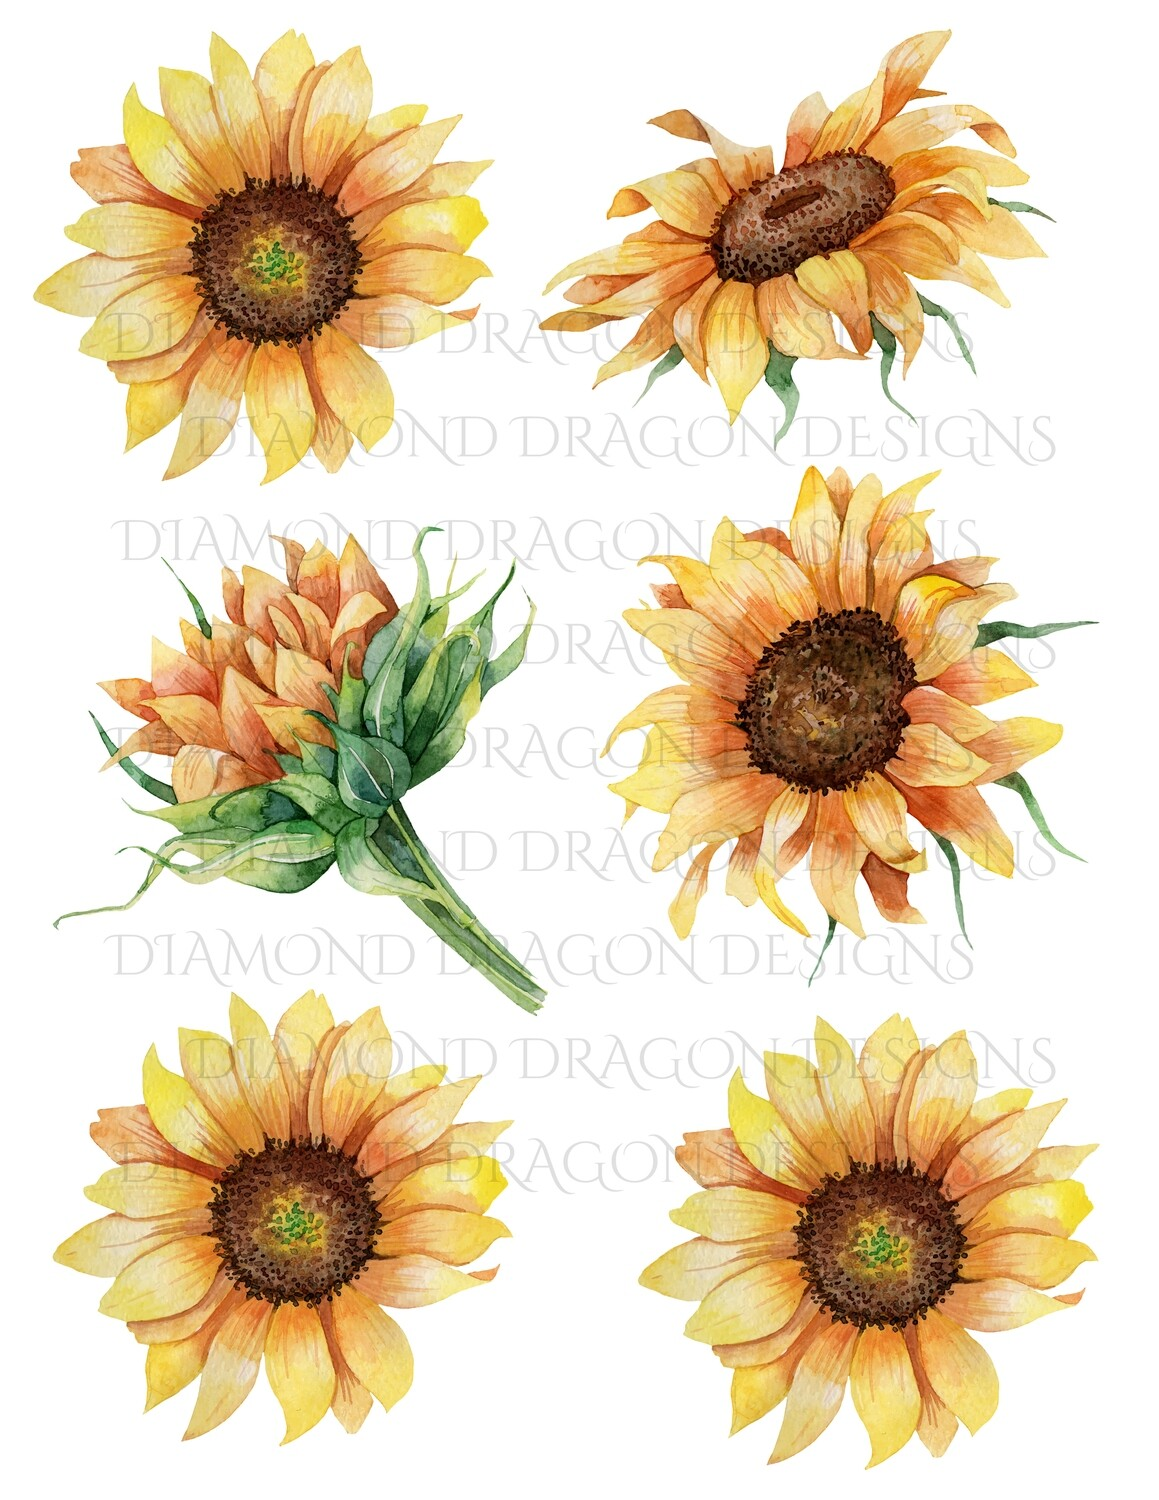 Sunflowers - Whole Sunflower, Watercolor Sunflowers, 6 Image Bundle, Waterslide